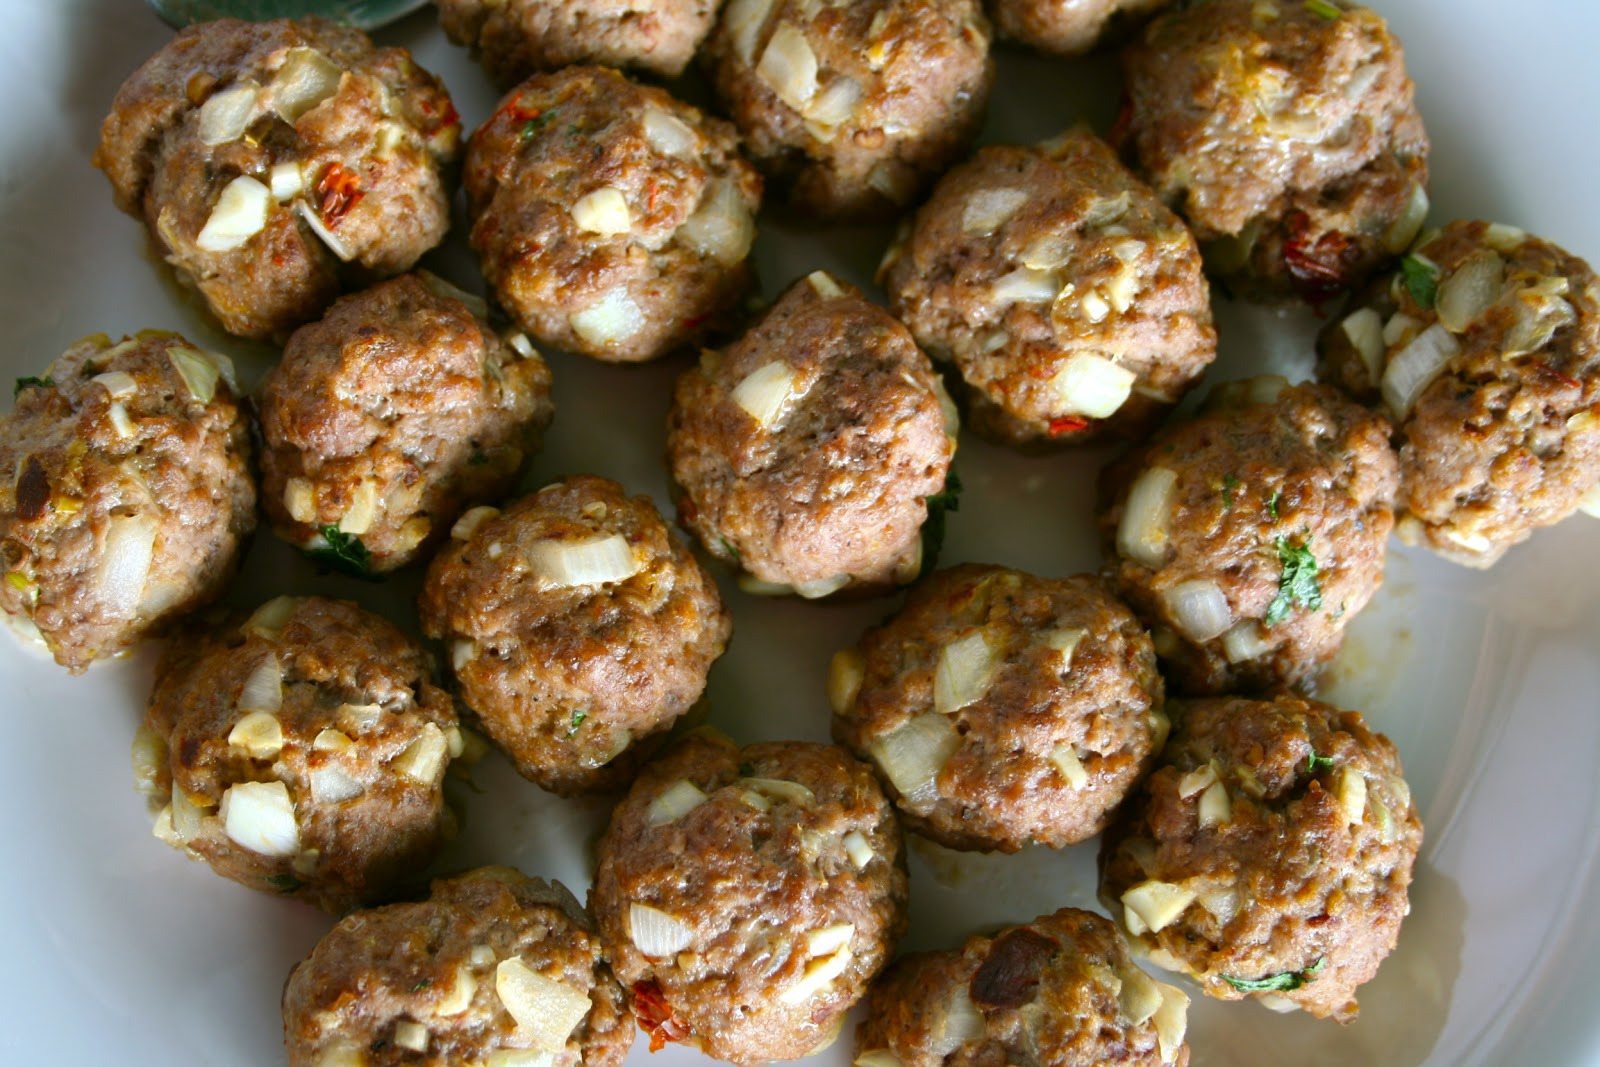 Saturdays with Maggy: Meatballs for New Friends